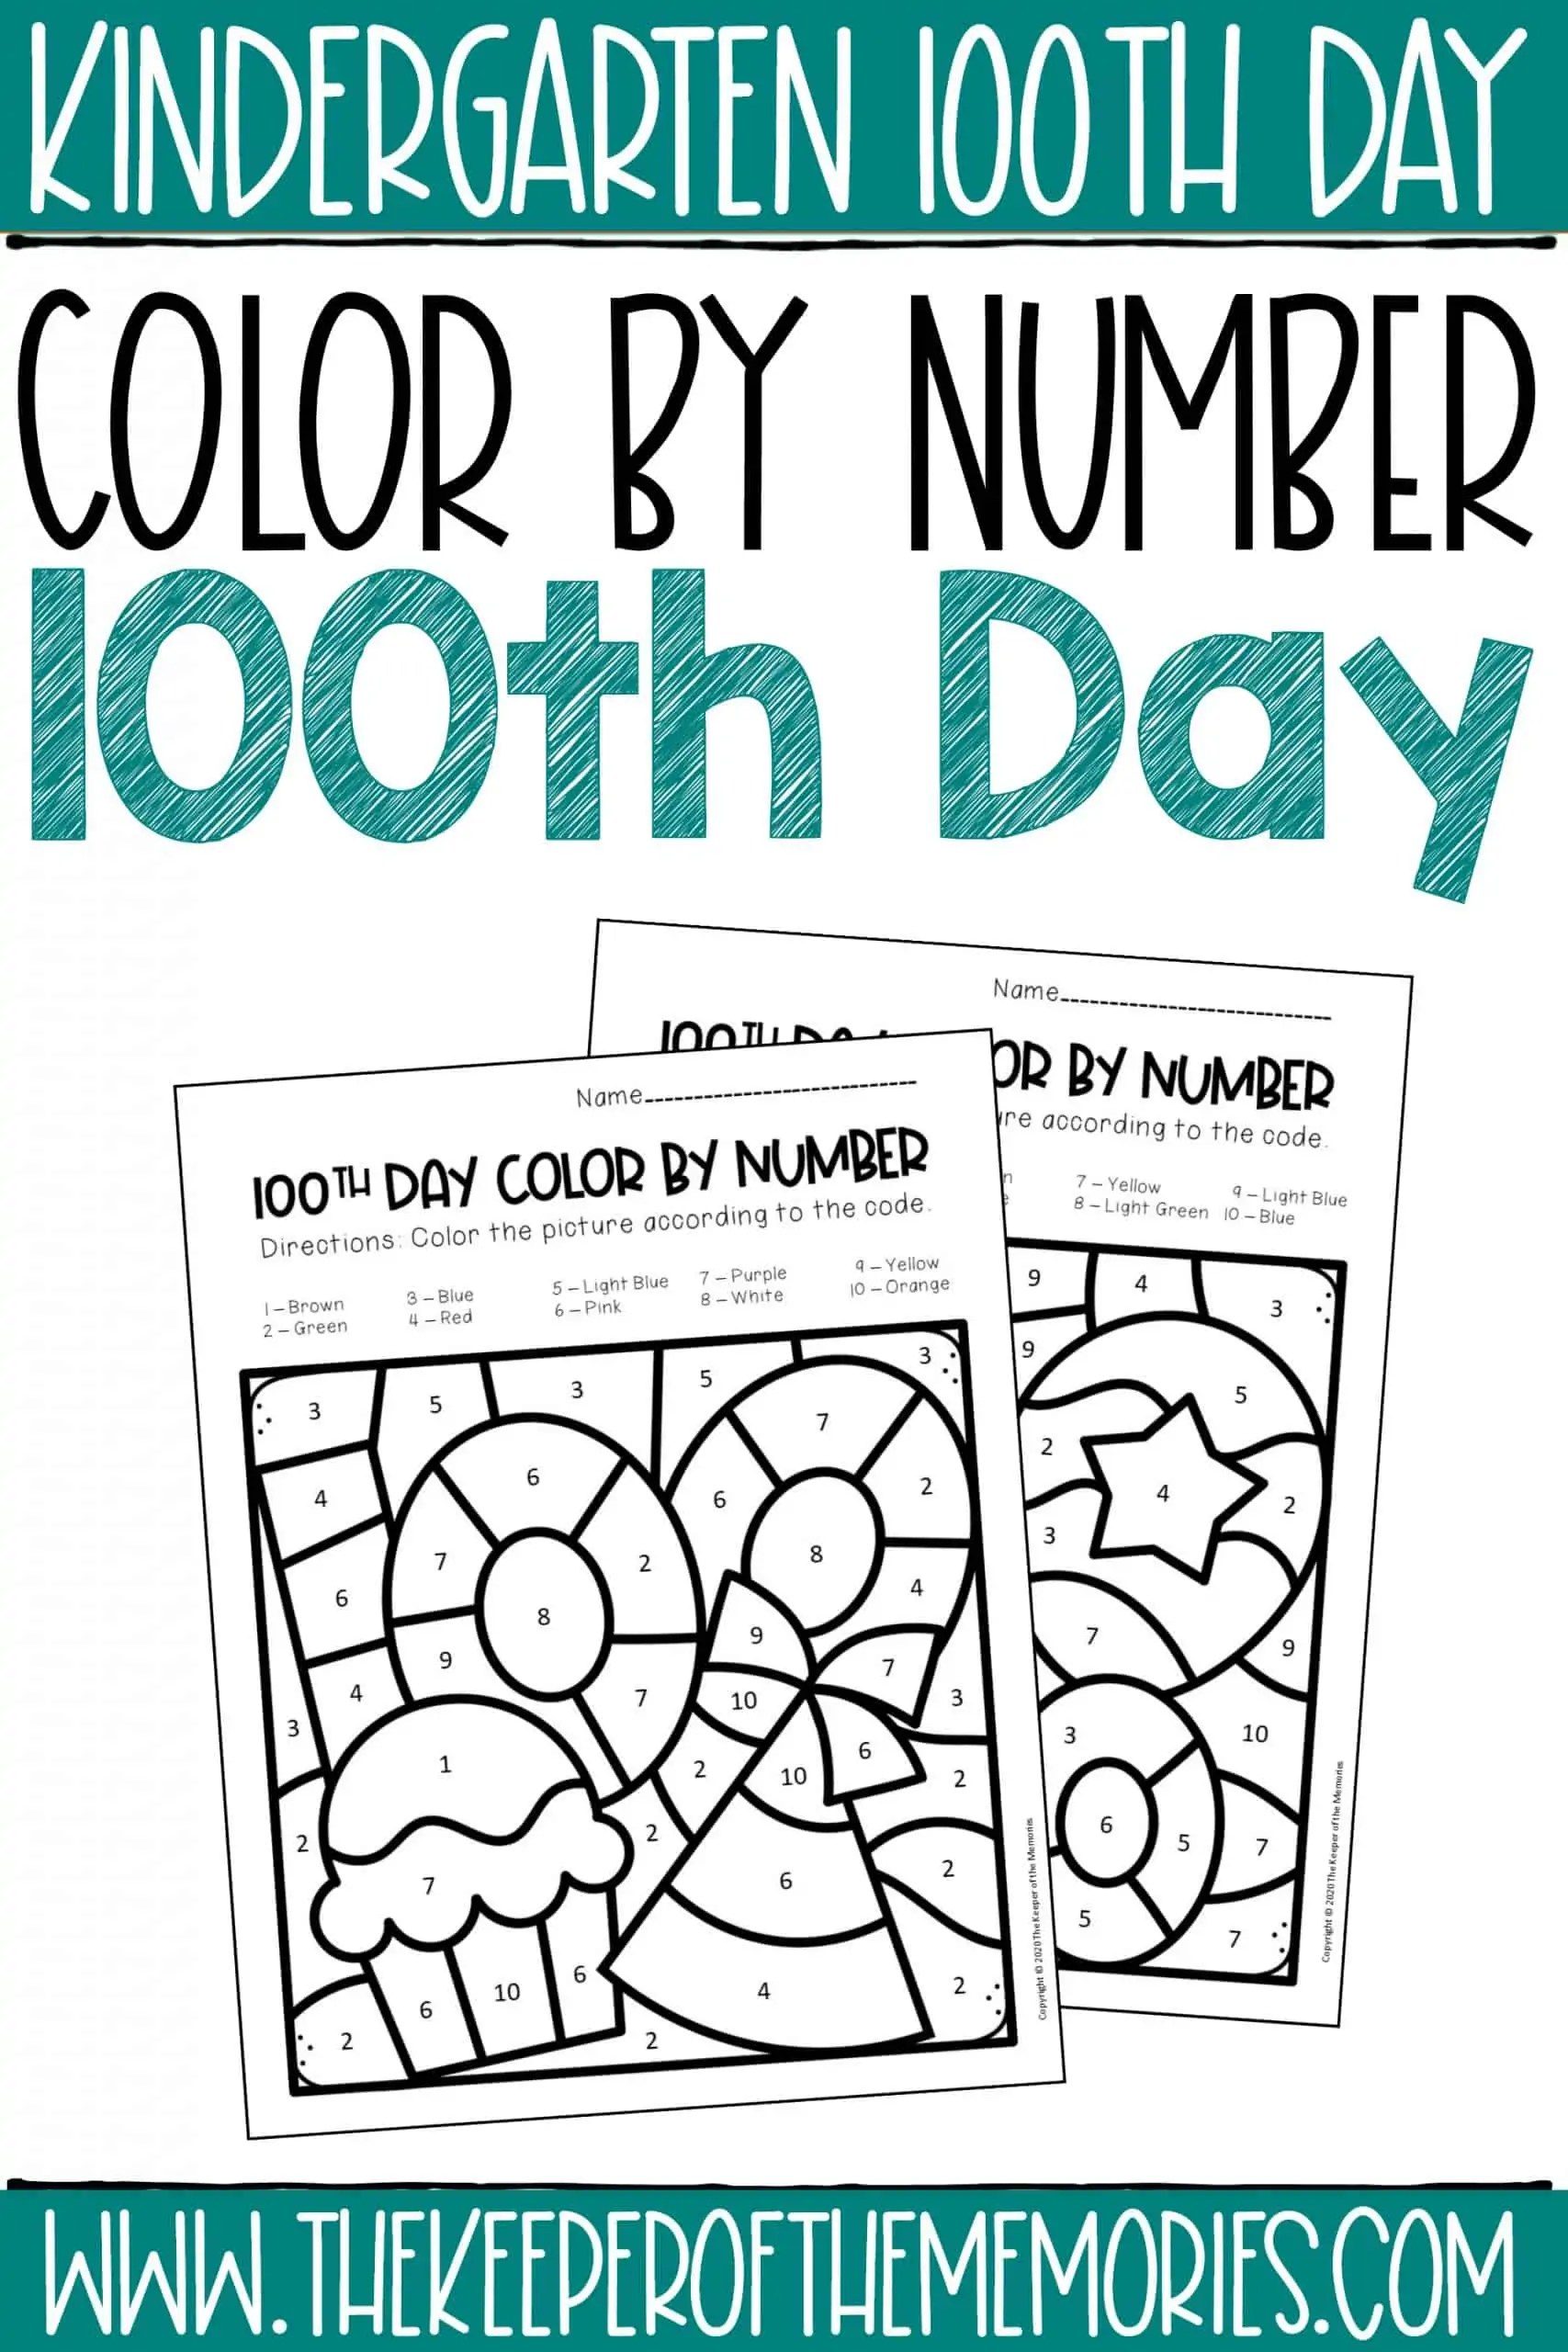 100th Day Color By Number Kindergarten Worksheets